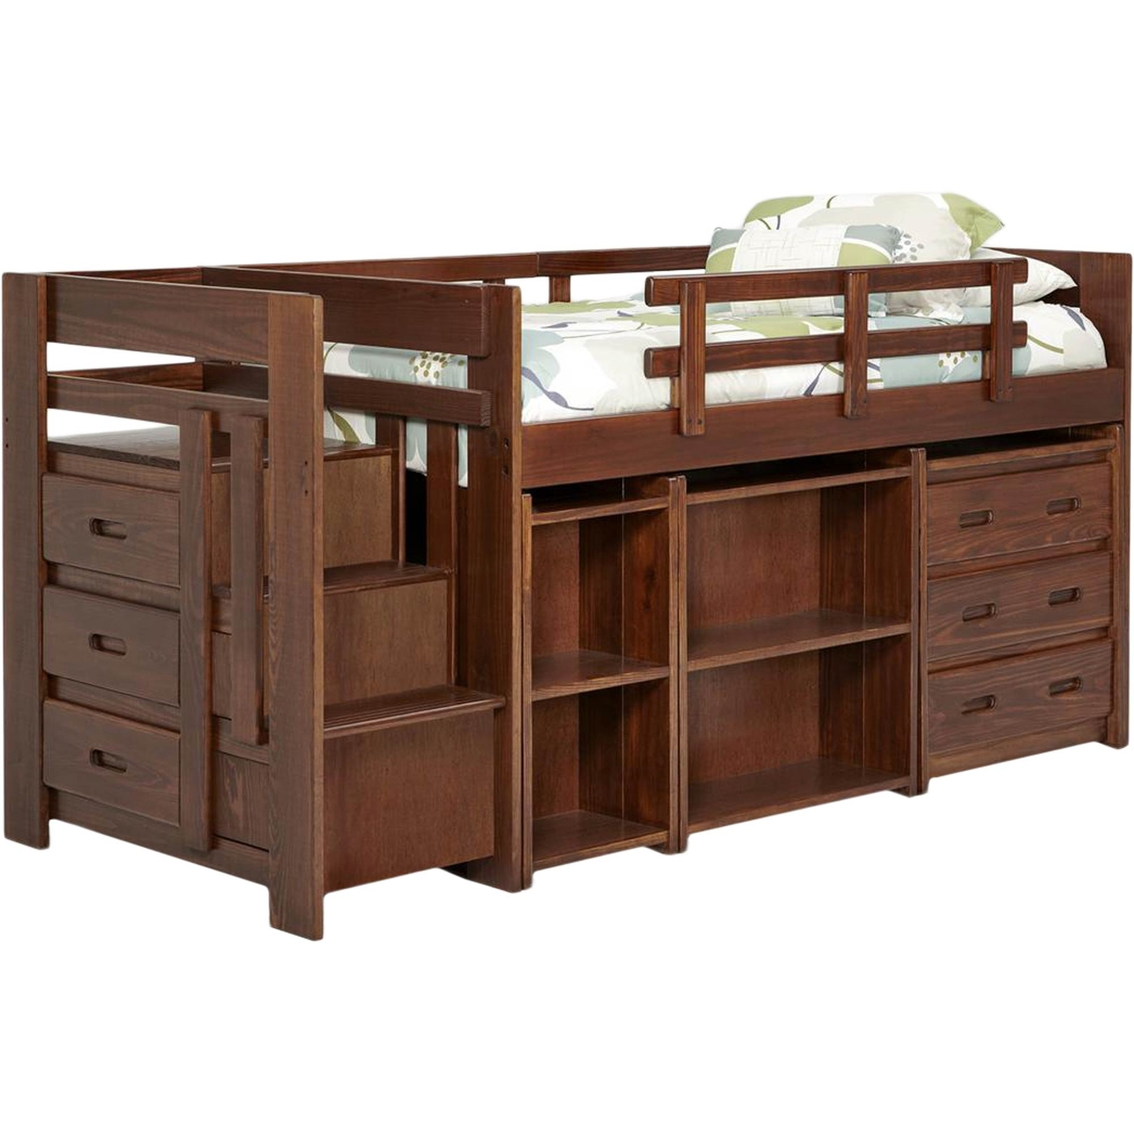 Chelsea twin mini loft bed with storage bedroom for Hometown furniture exchange